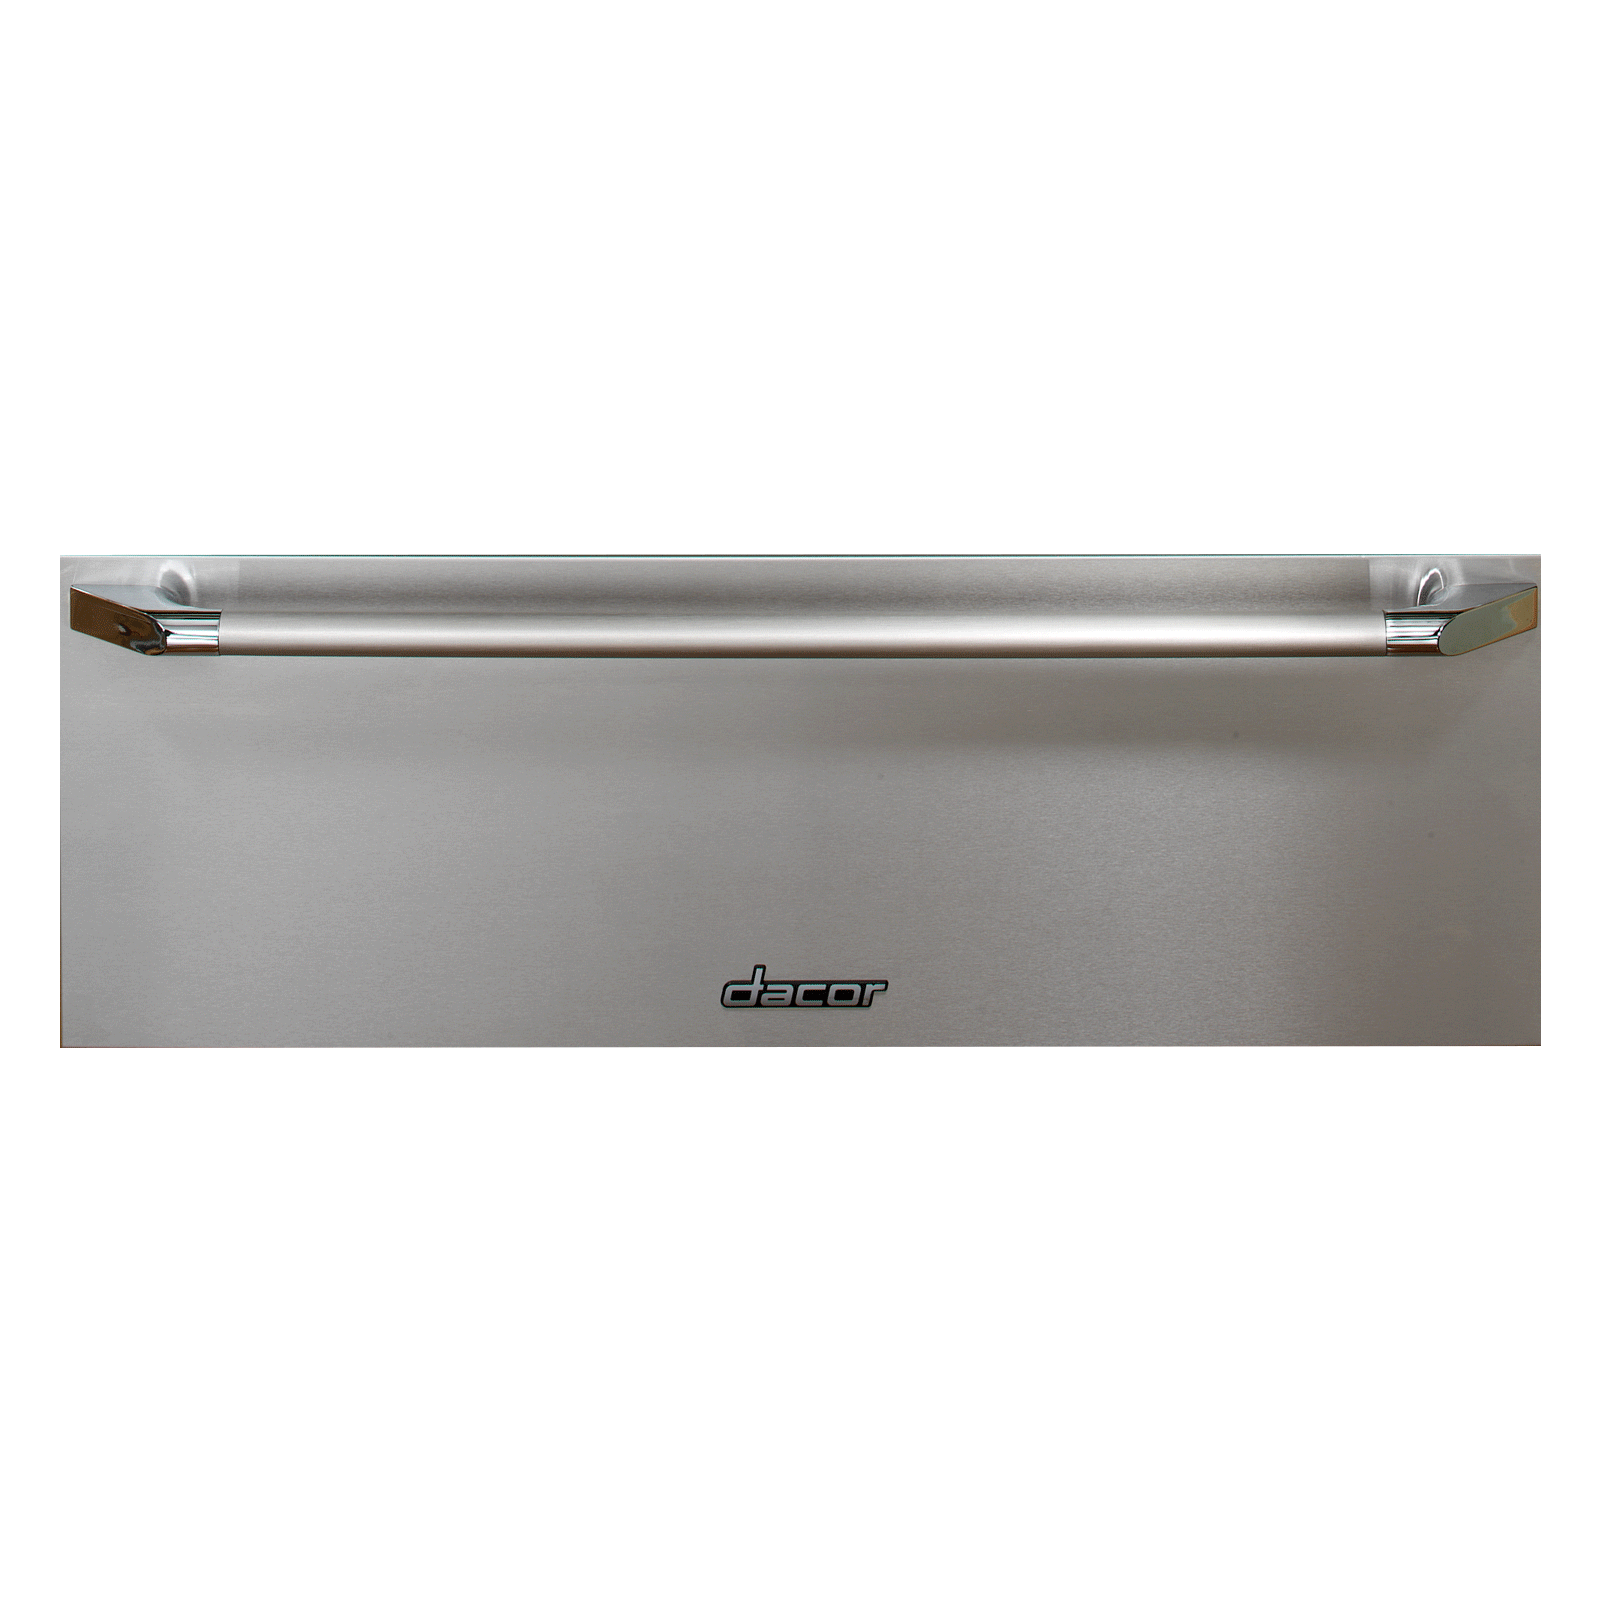 "Dacor  Heritage 24"" Epicure Warming Drawer, in Stainless Steel with Chrome Trim"